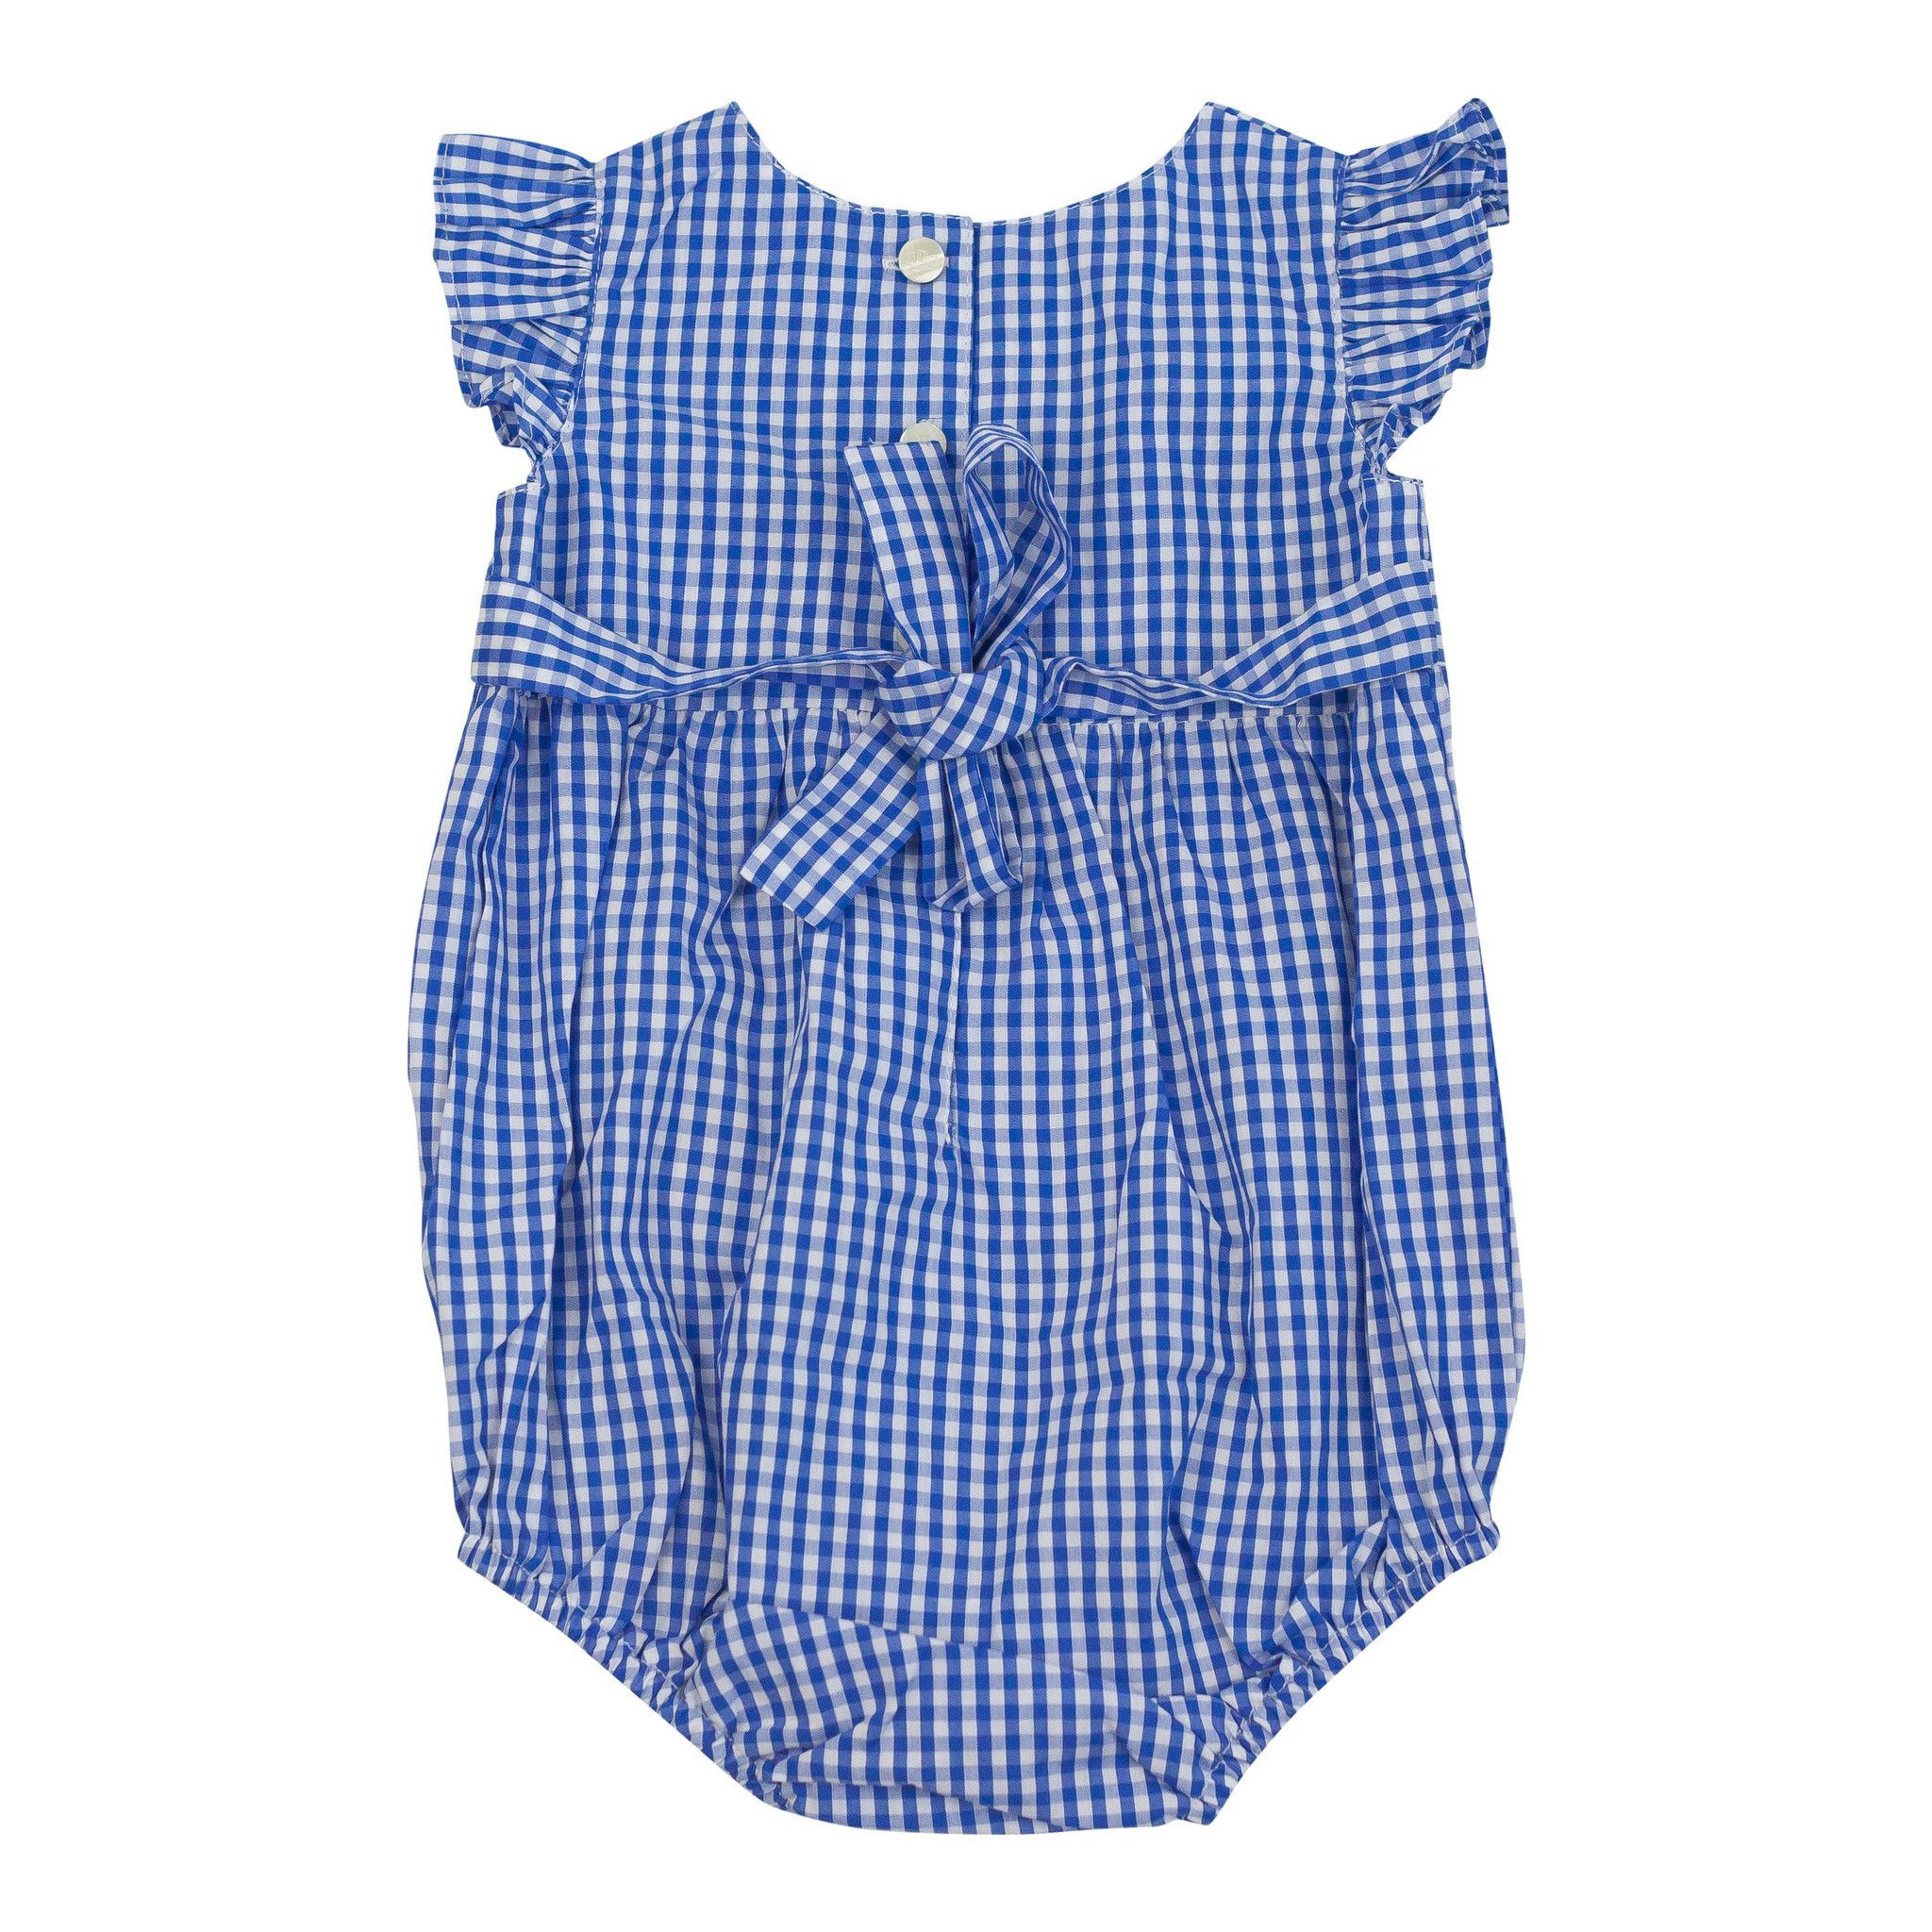 Beatrice Bubble, Blue Gingham Final Gingham, Girl